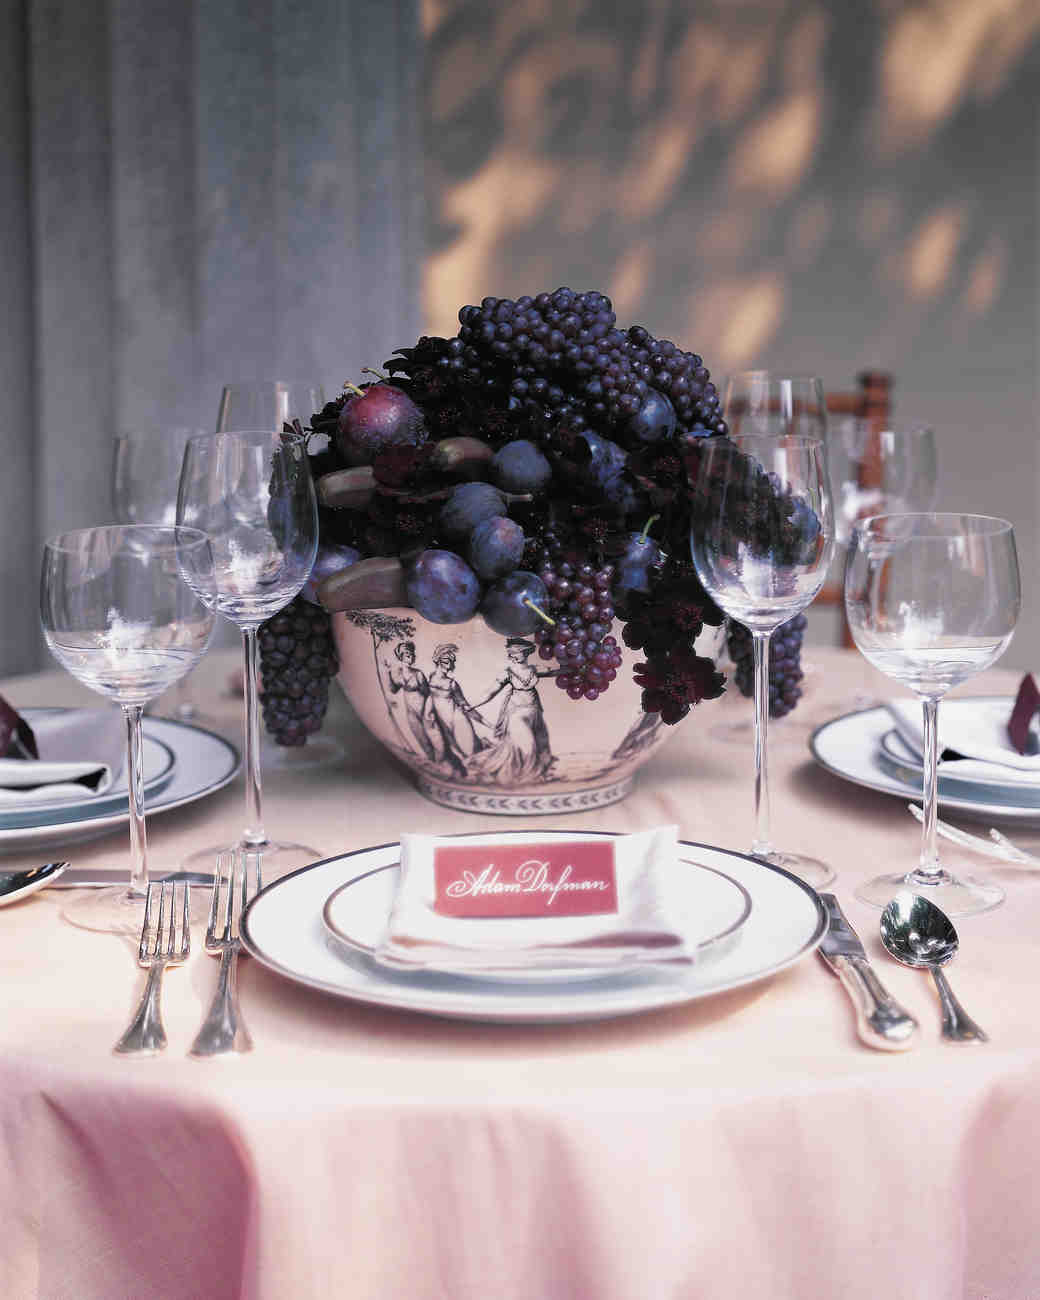 Wedding centerpieces bursting with fruits and